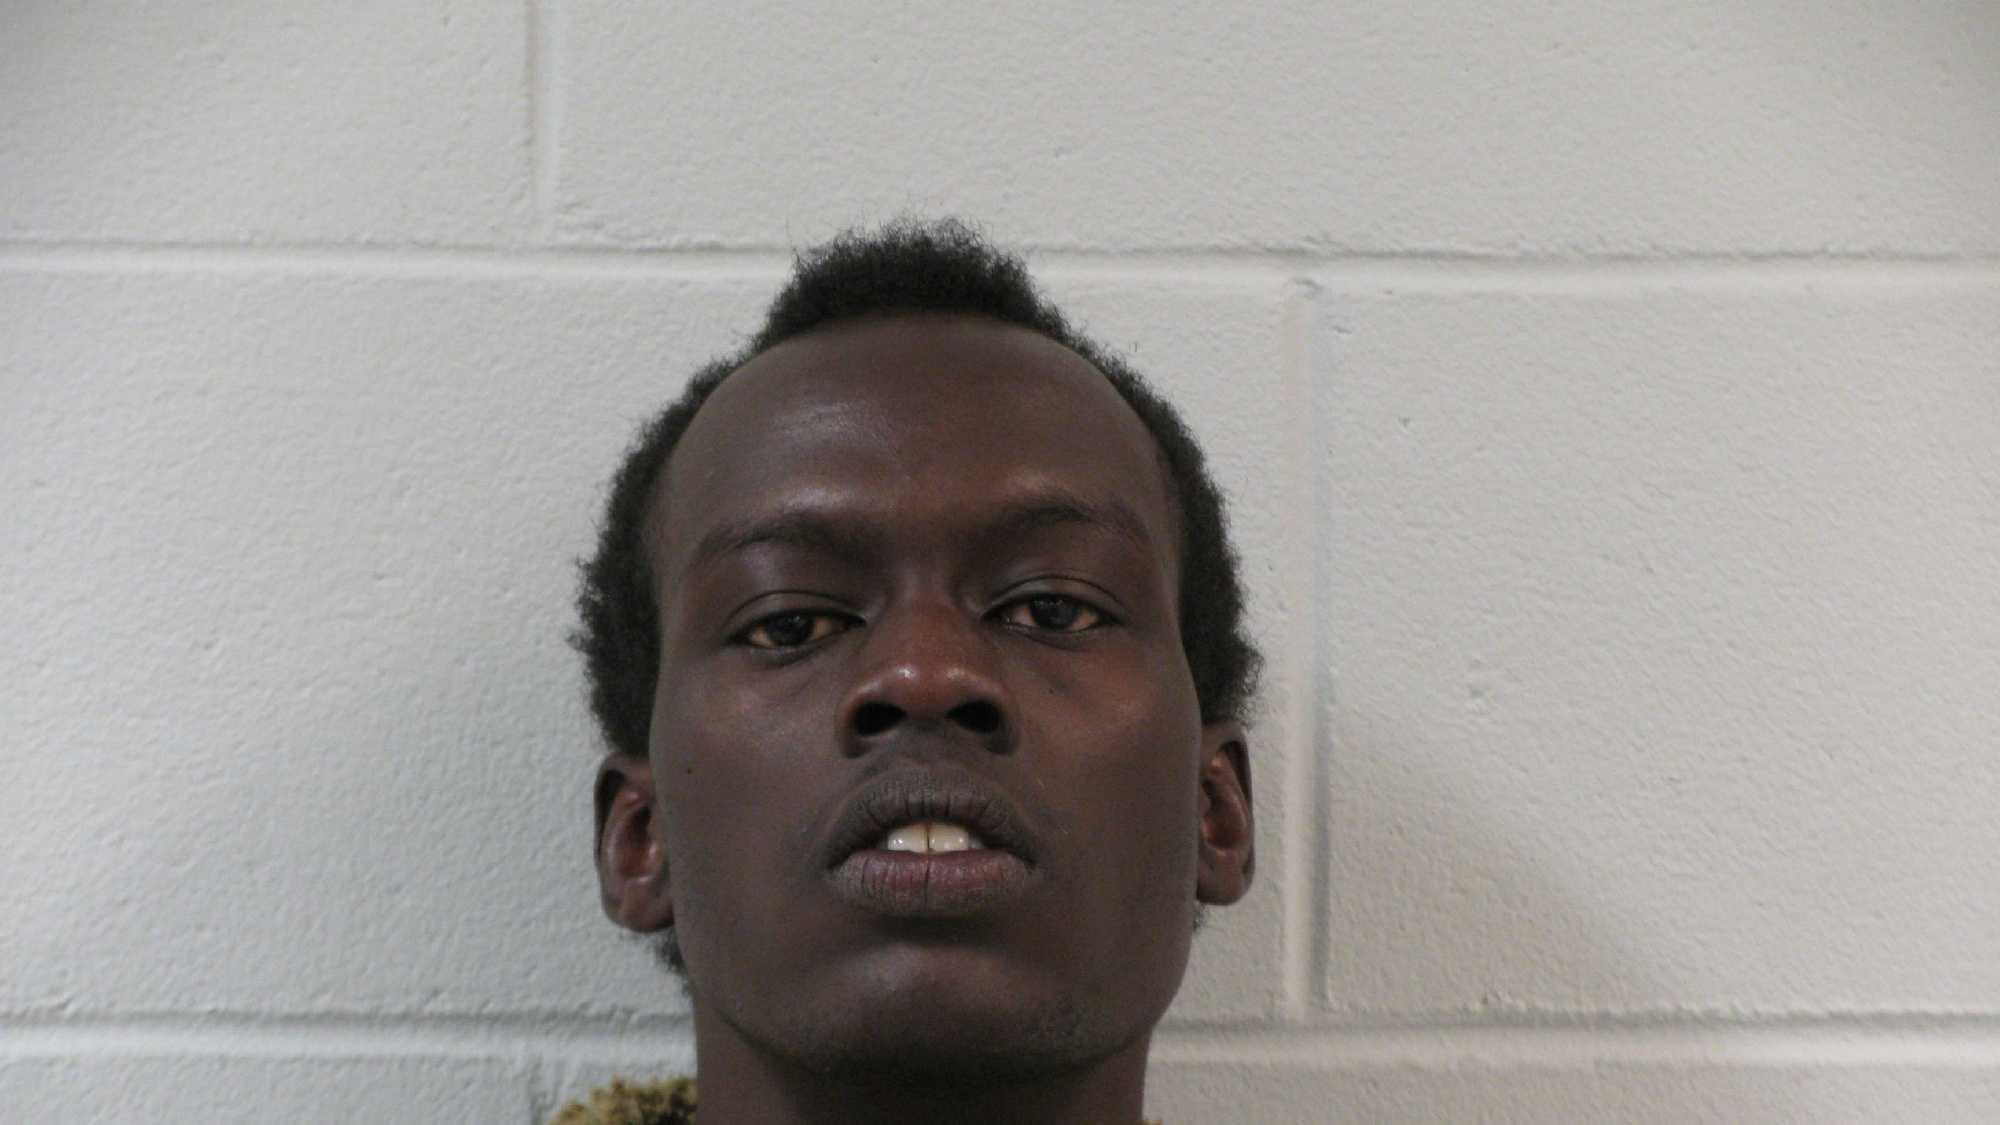 Jok Leek, a Keene State student, has been arrested and charged with second-degree assault after an alleged stabbing incident involving a classmate.